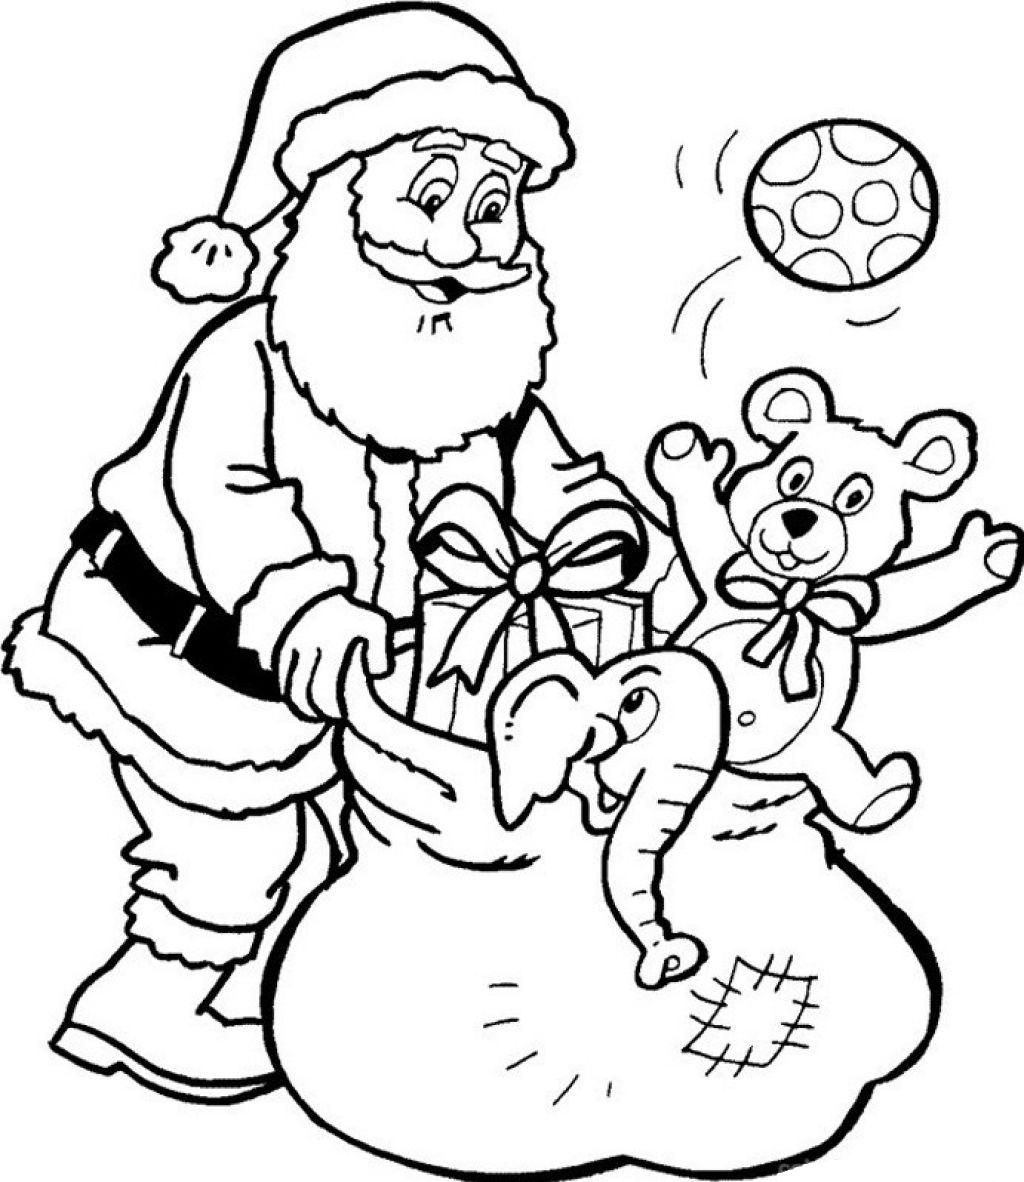 Santa Beard Coloring Page With Claus And Presents Printable Pages Christmas Some